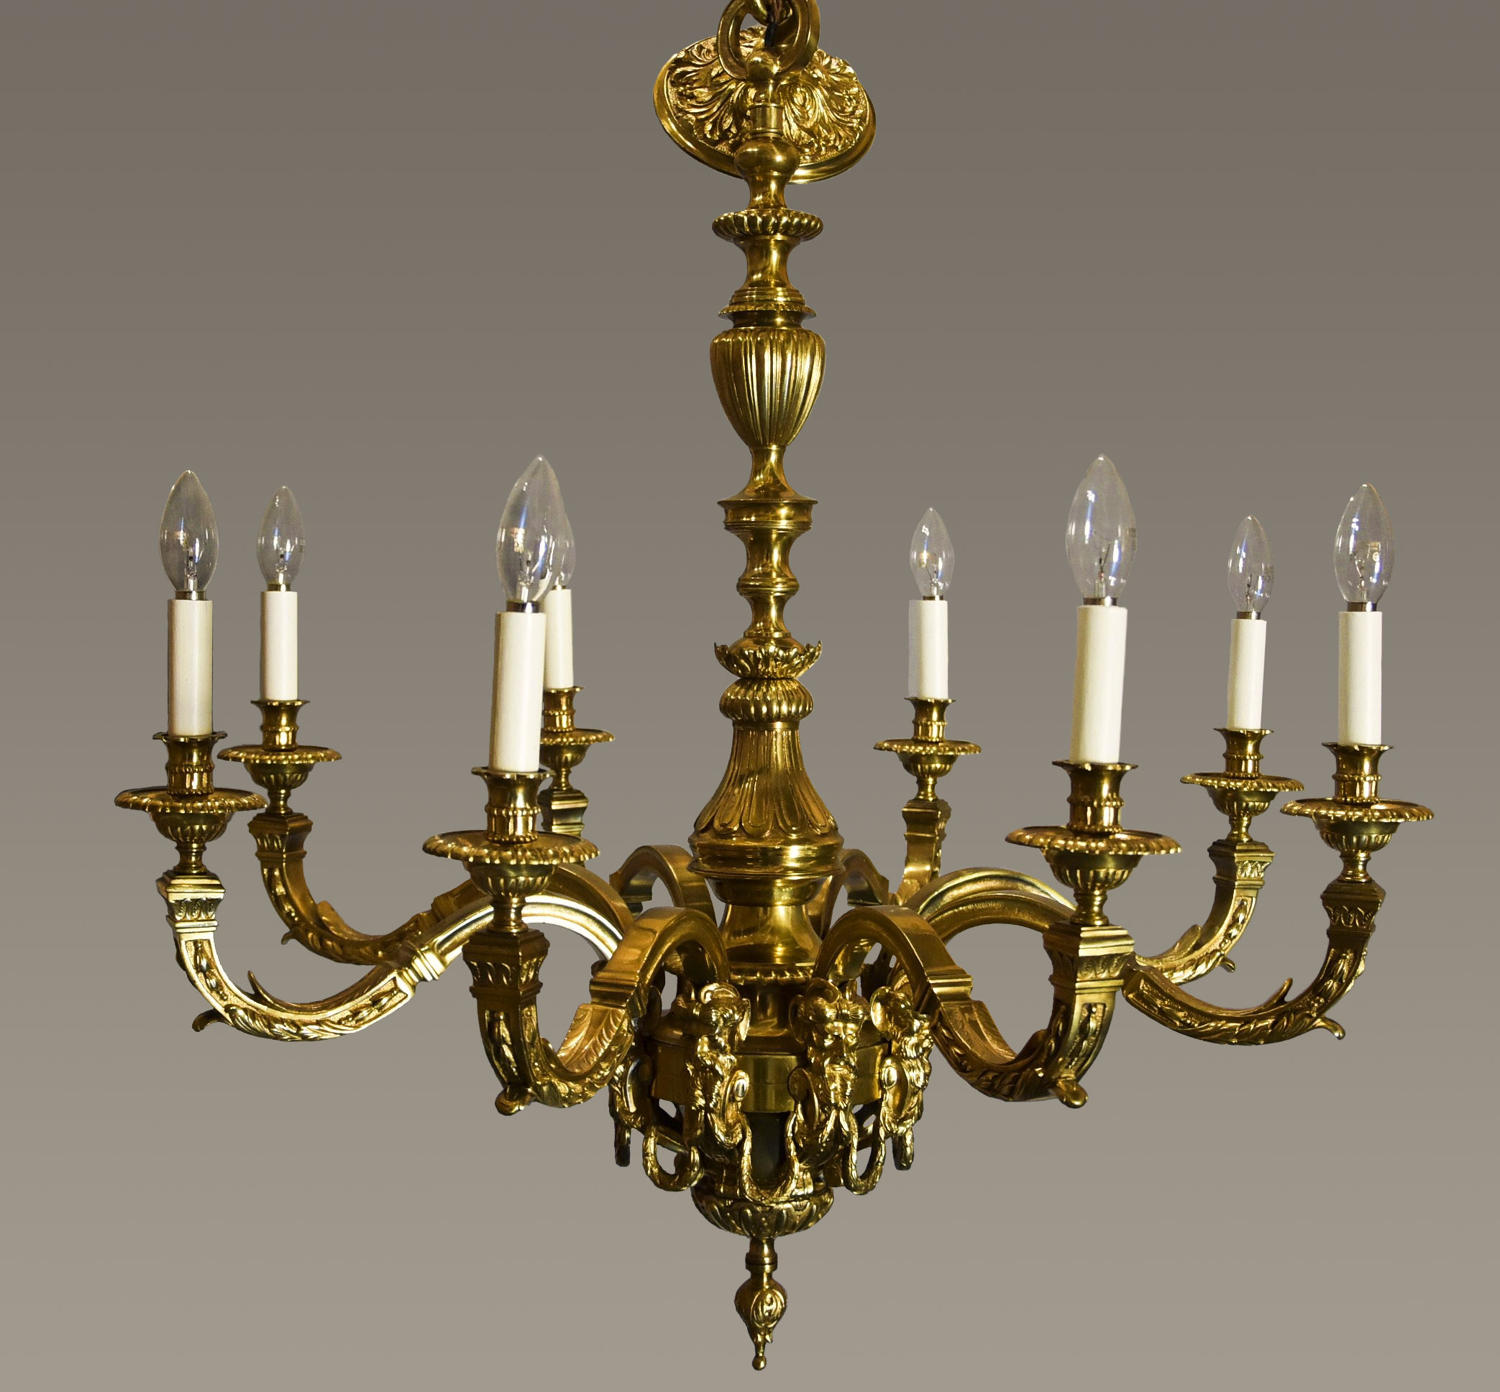 French Louis XIV Style Gilt Bronze 12 Light Chandelier